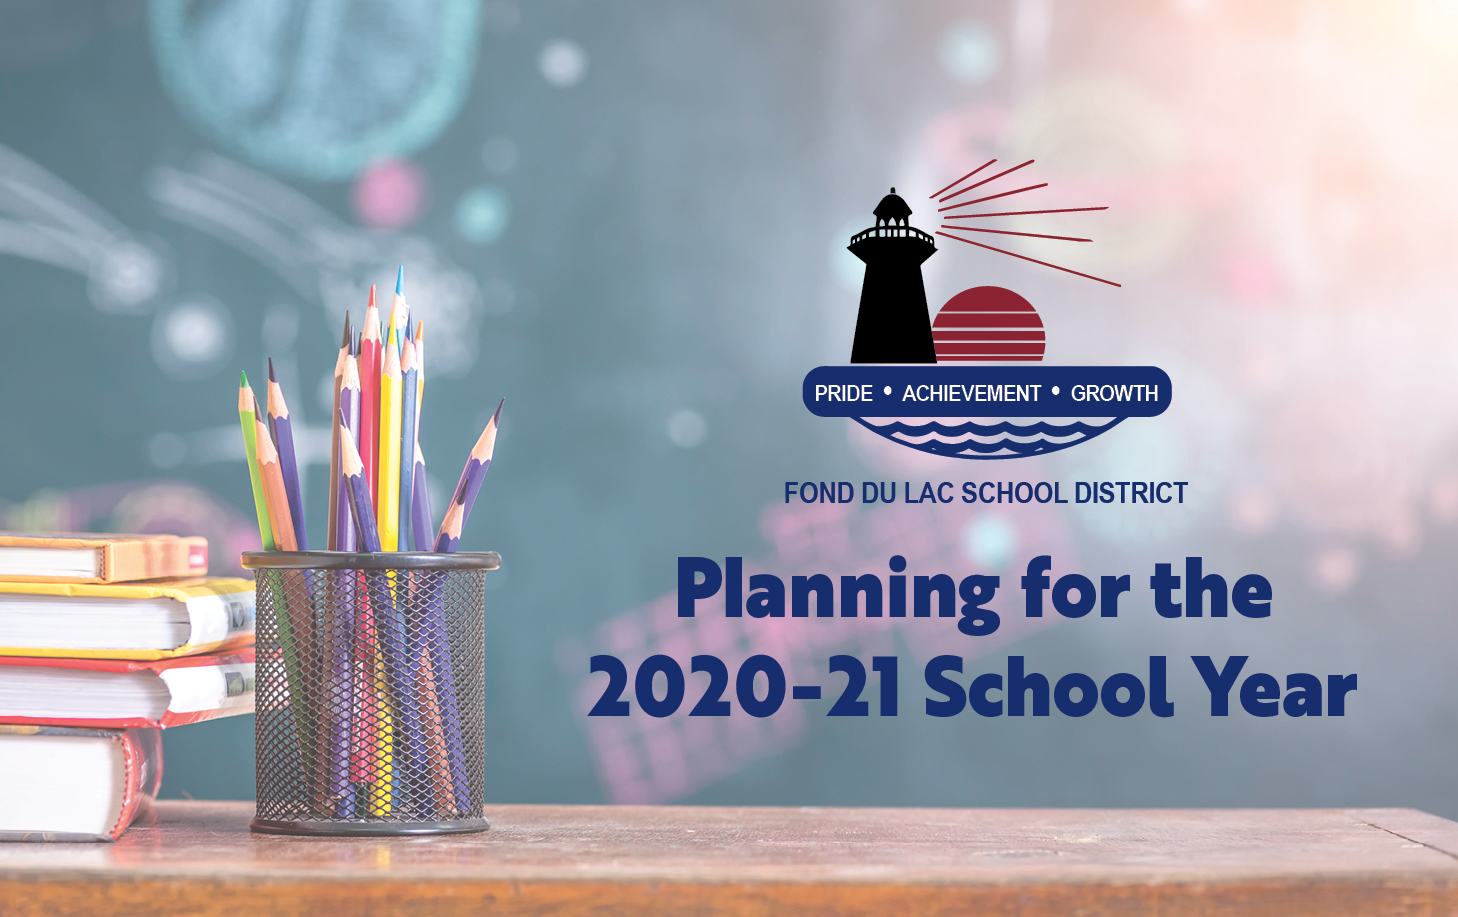 Planning for the 2020-21 School Year